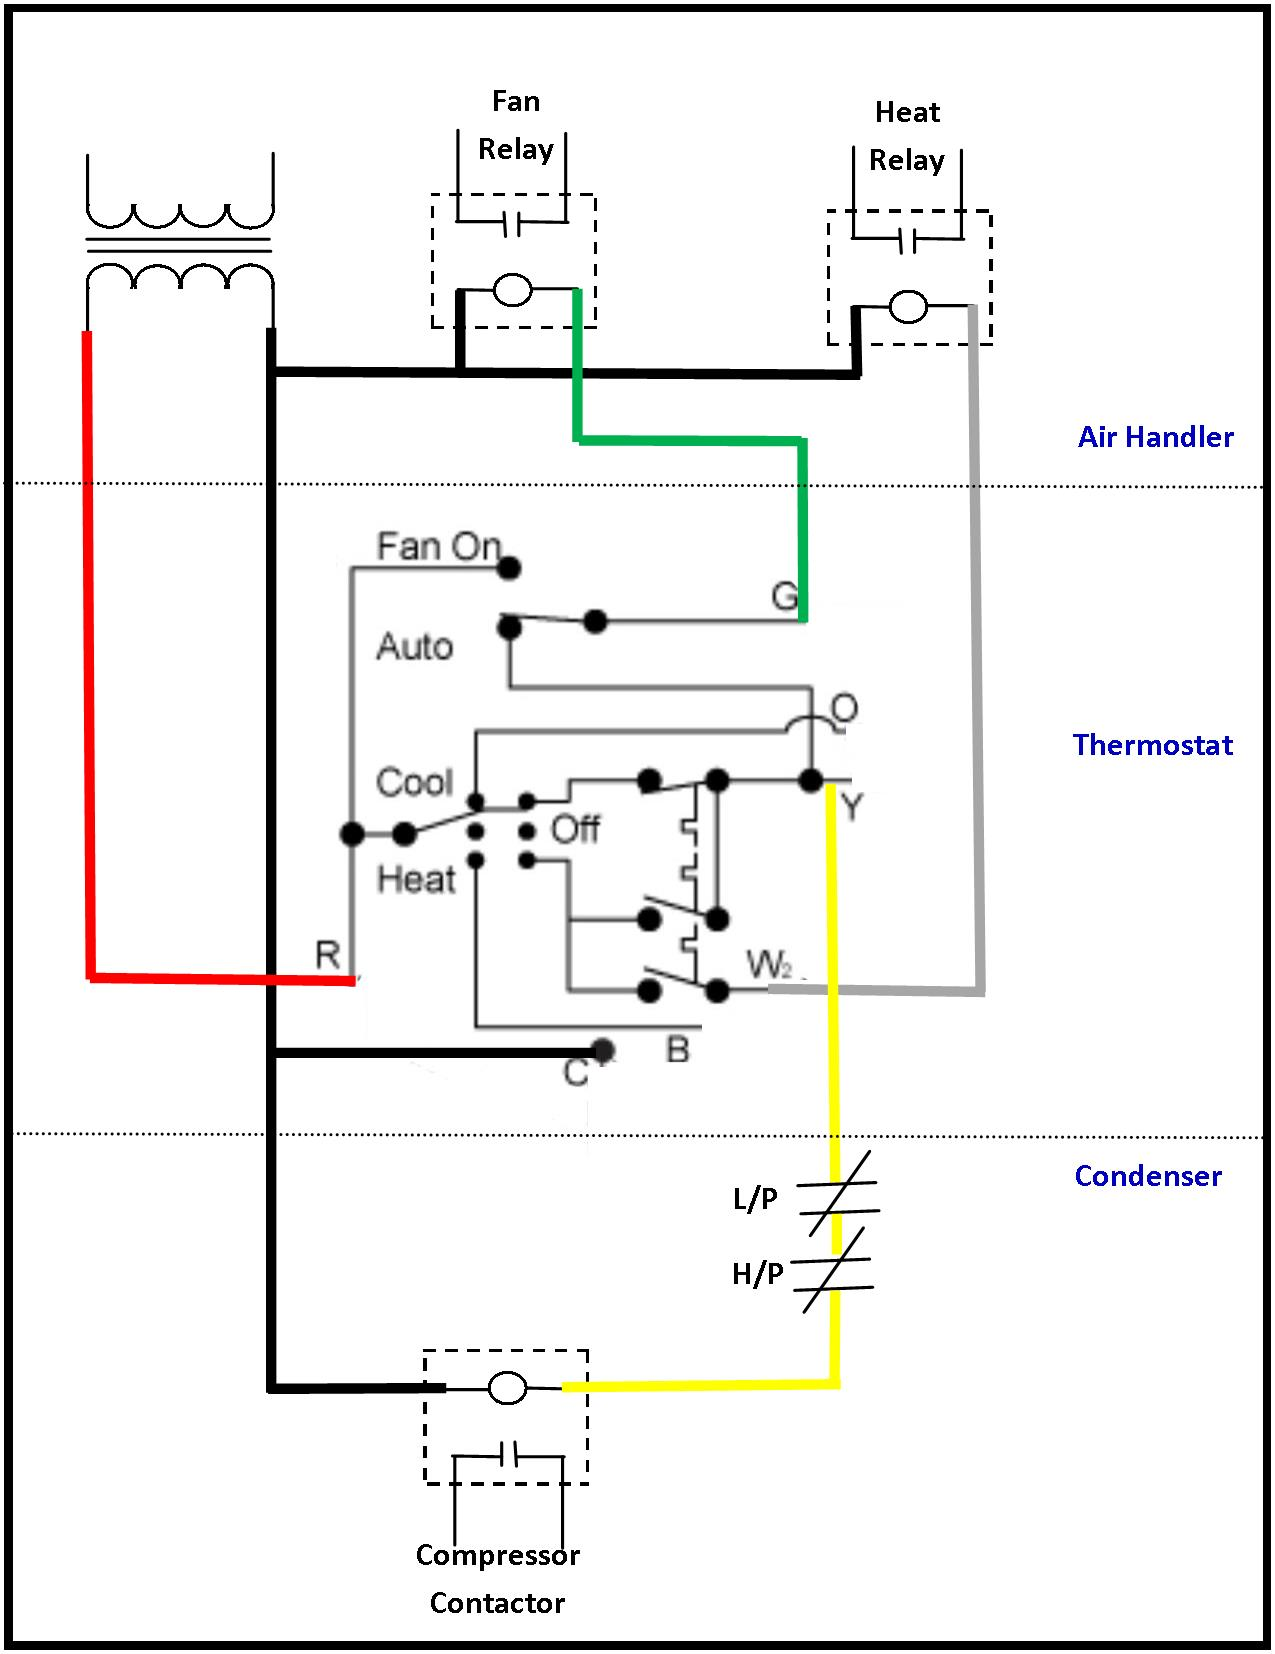 AC low voltage wiring diagram1 hvac contactor wiring diagram hvac condenser wiring diagram Simple Wiring Schematics at crackthecode.co